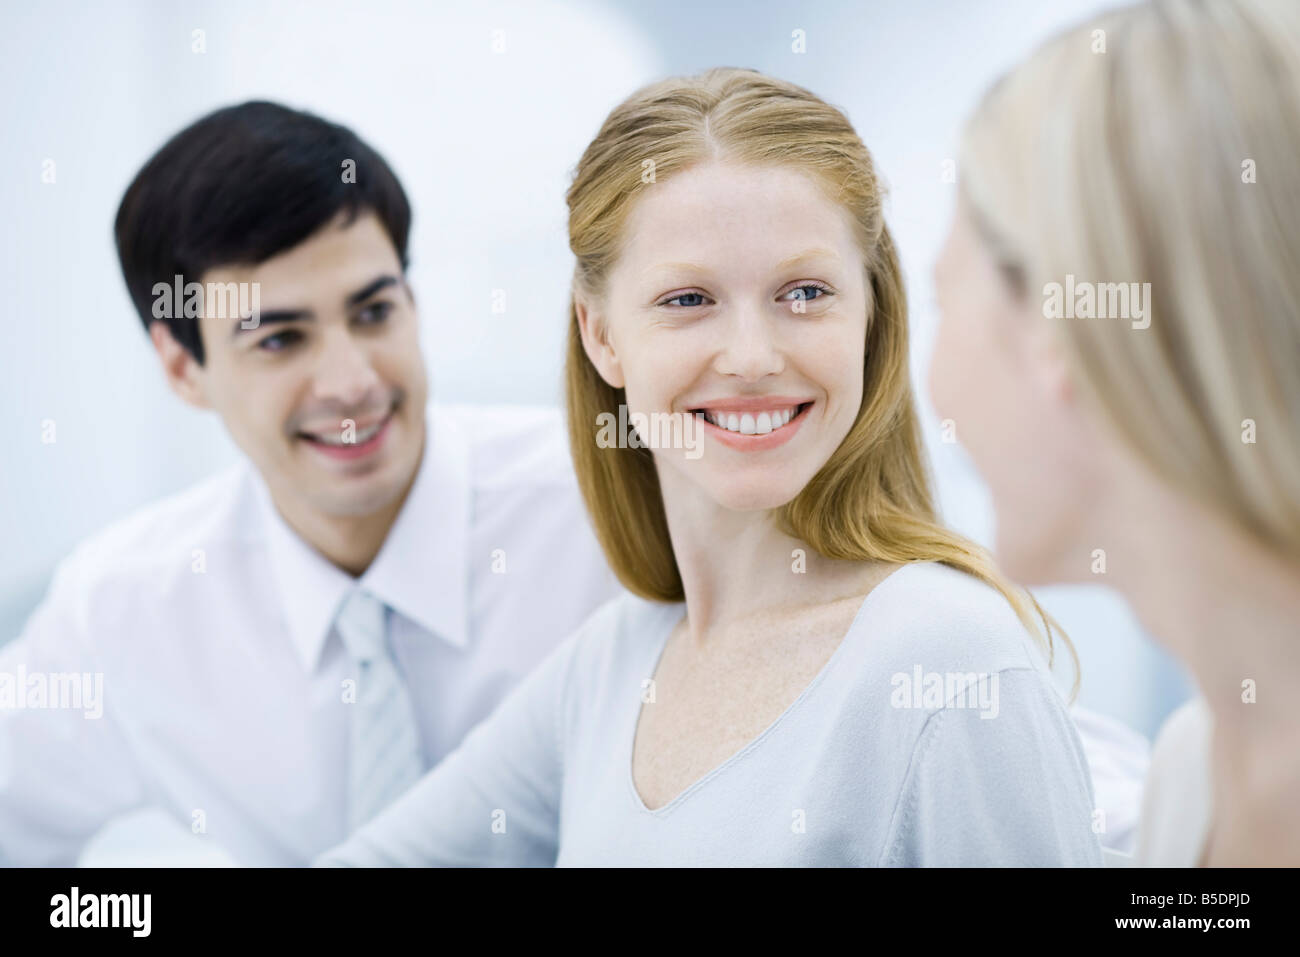 Young professional woman smiling at colleague, close-up - Stock Image